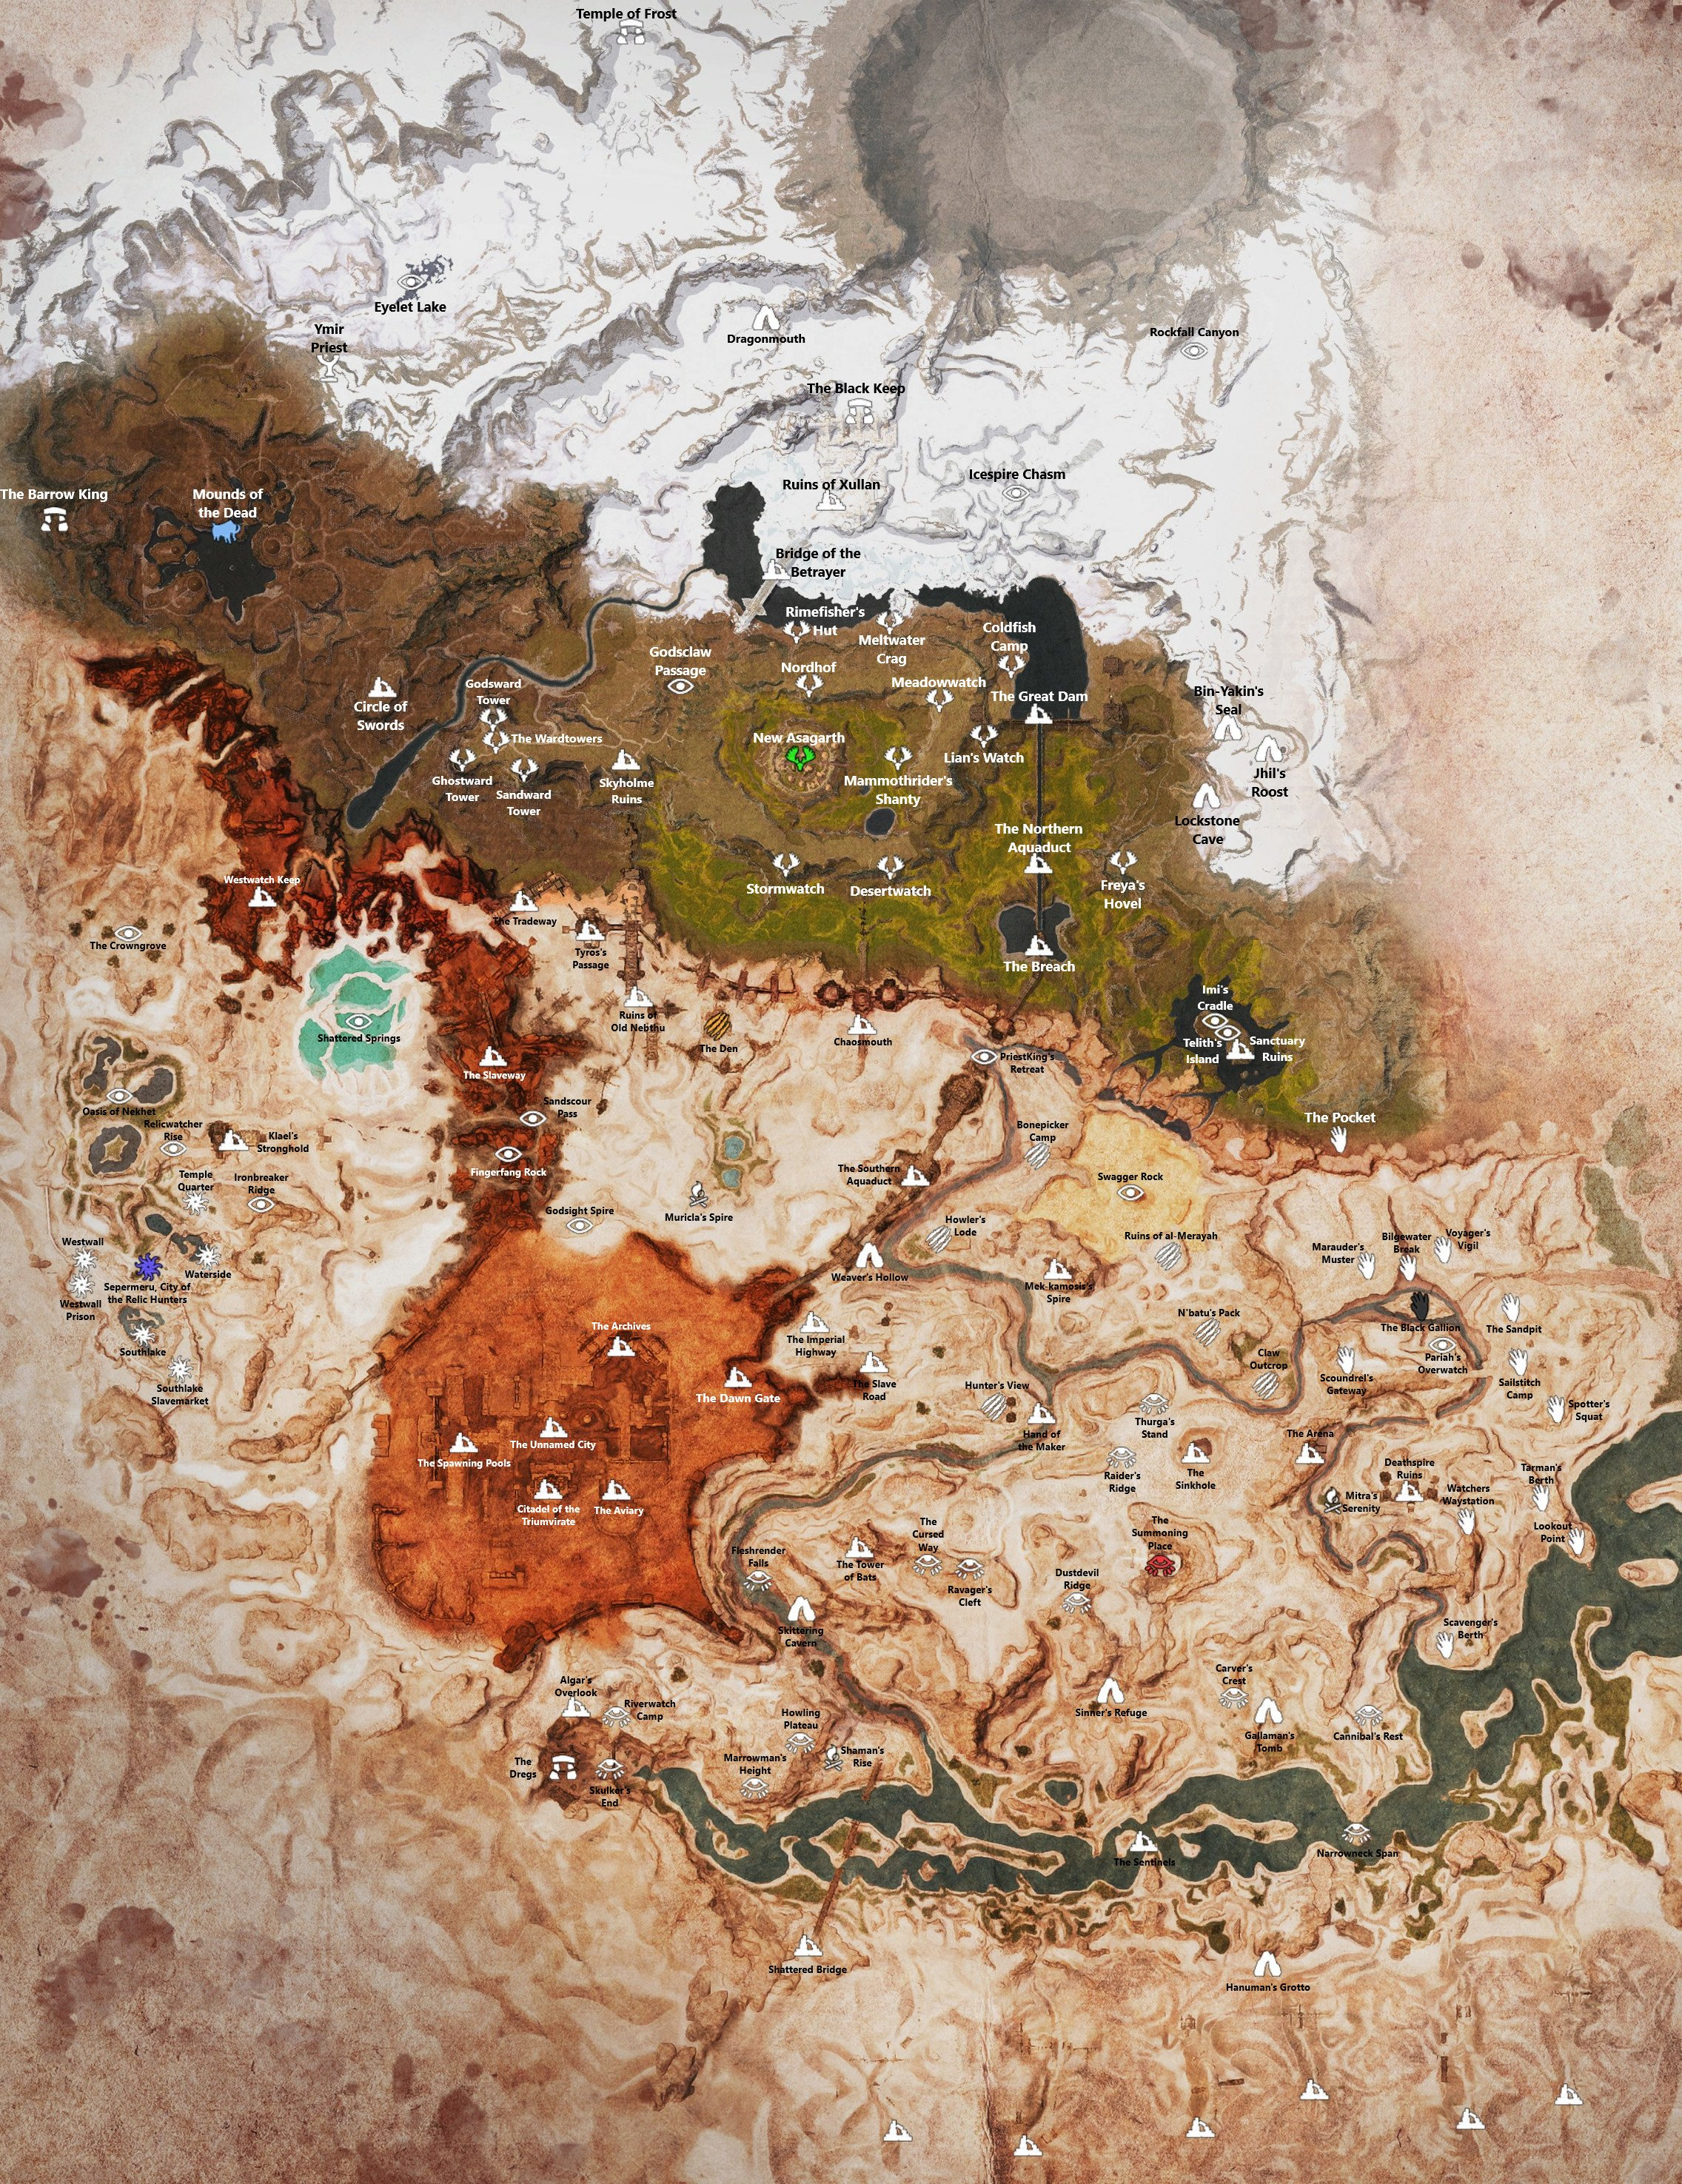 Conan Exiles: The Frozen North   Full Map with Discovery Locations